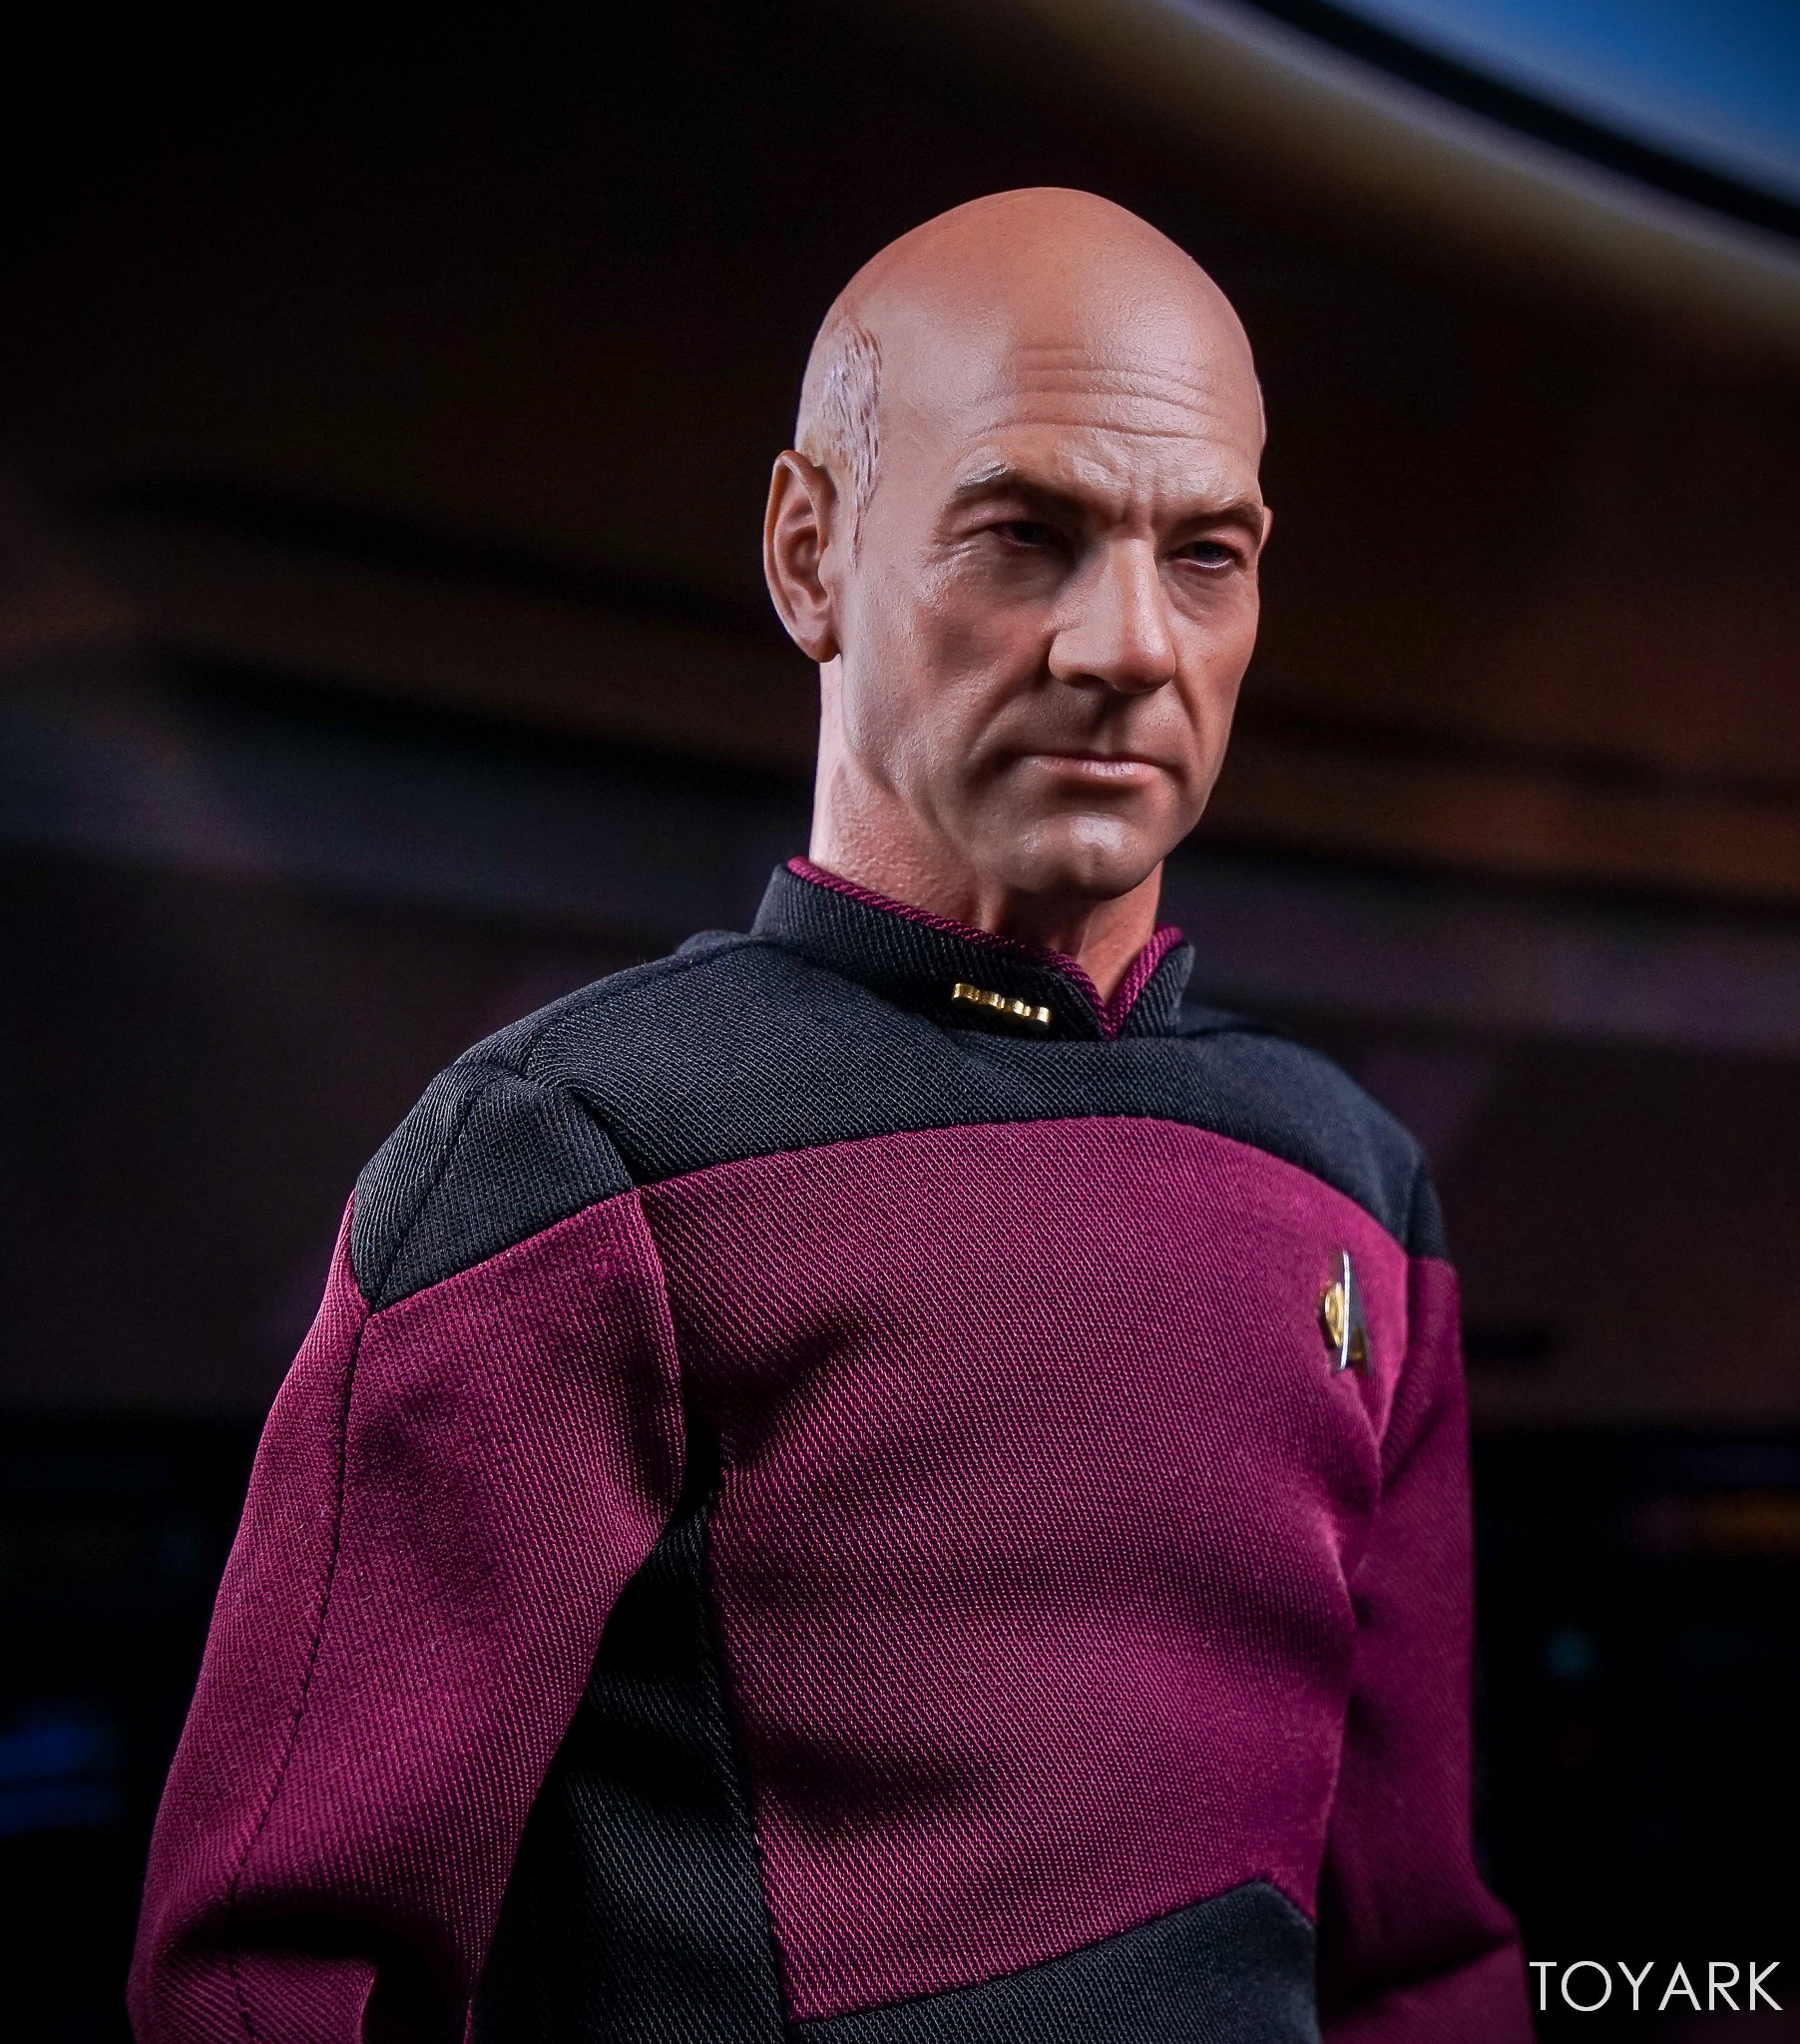 http://news.toyark.com/wp-content/uploads/sites/4/2017/10/Qmx-Star-Trek-TNG-Captain-Picard-061.jpg